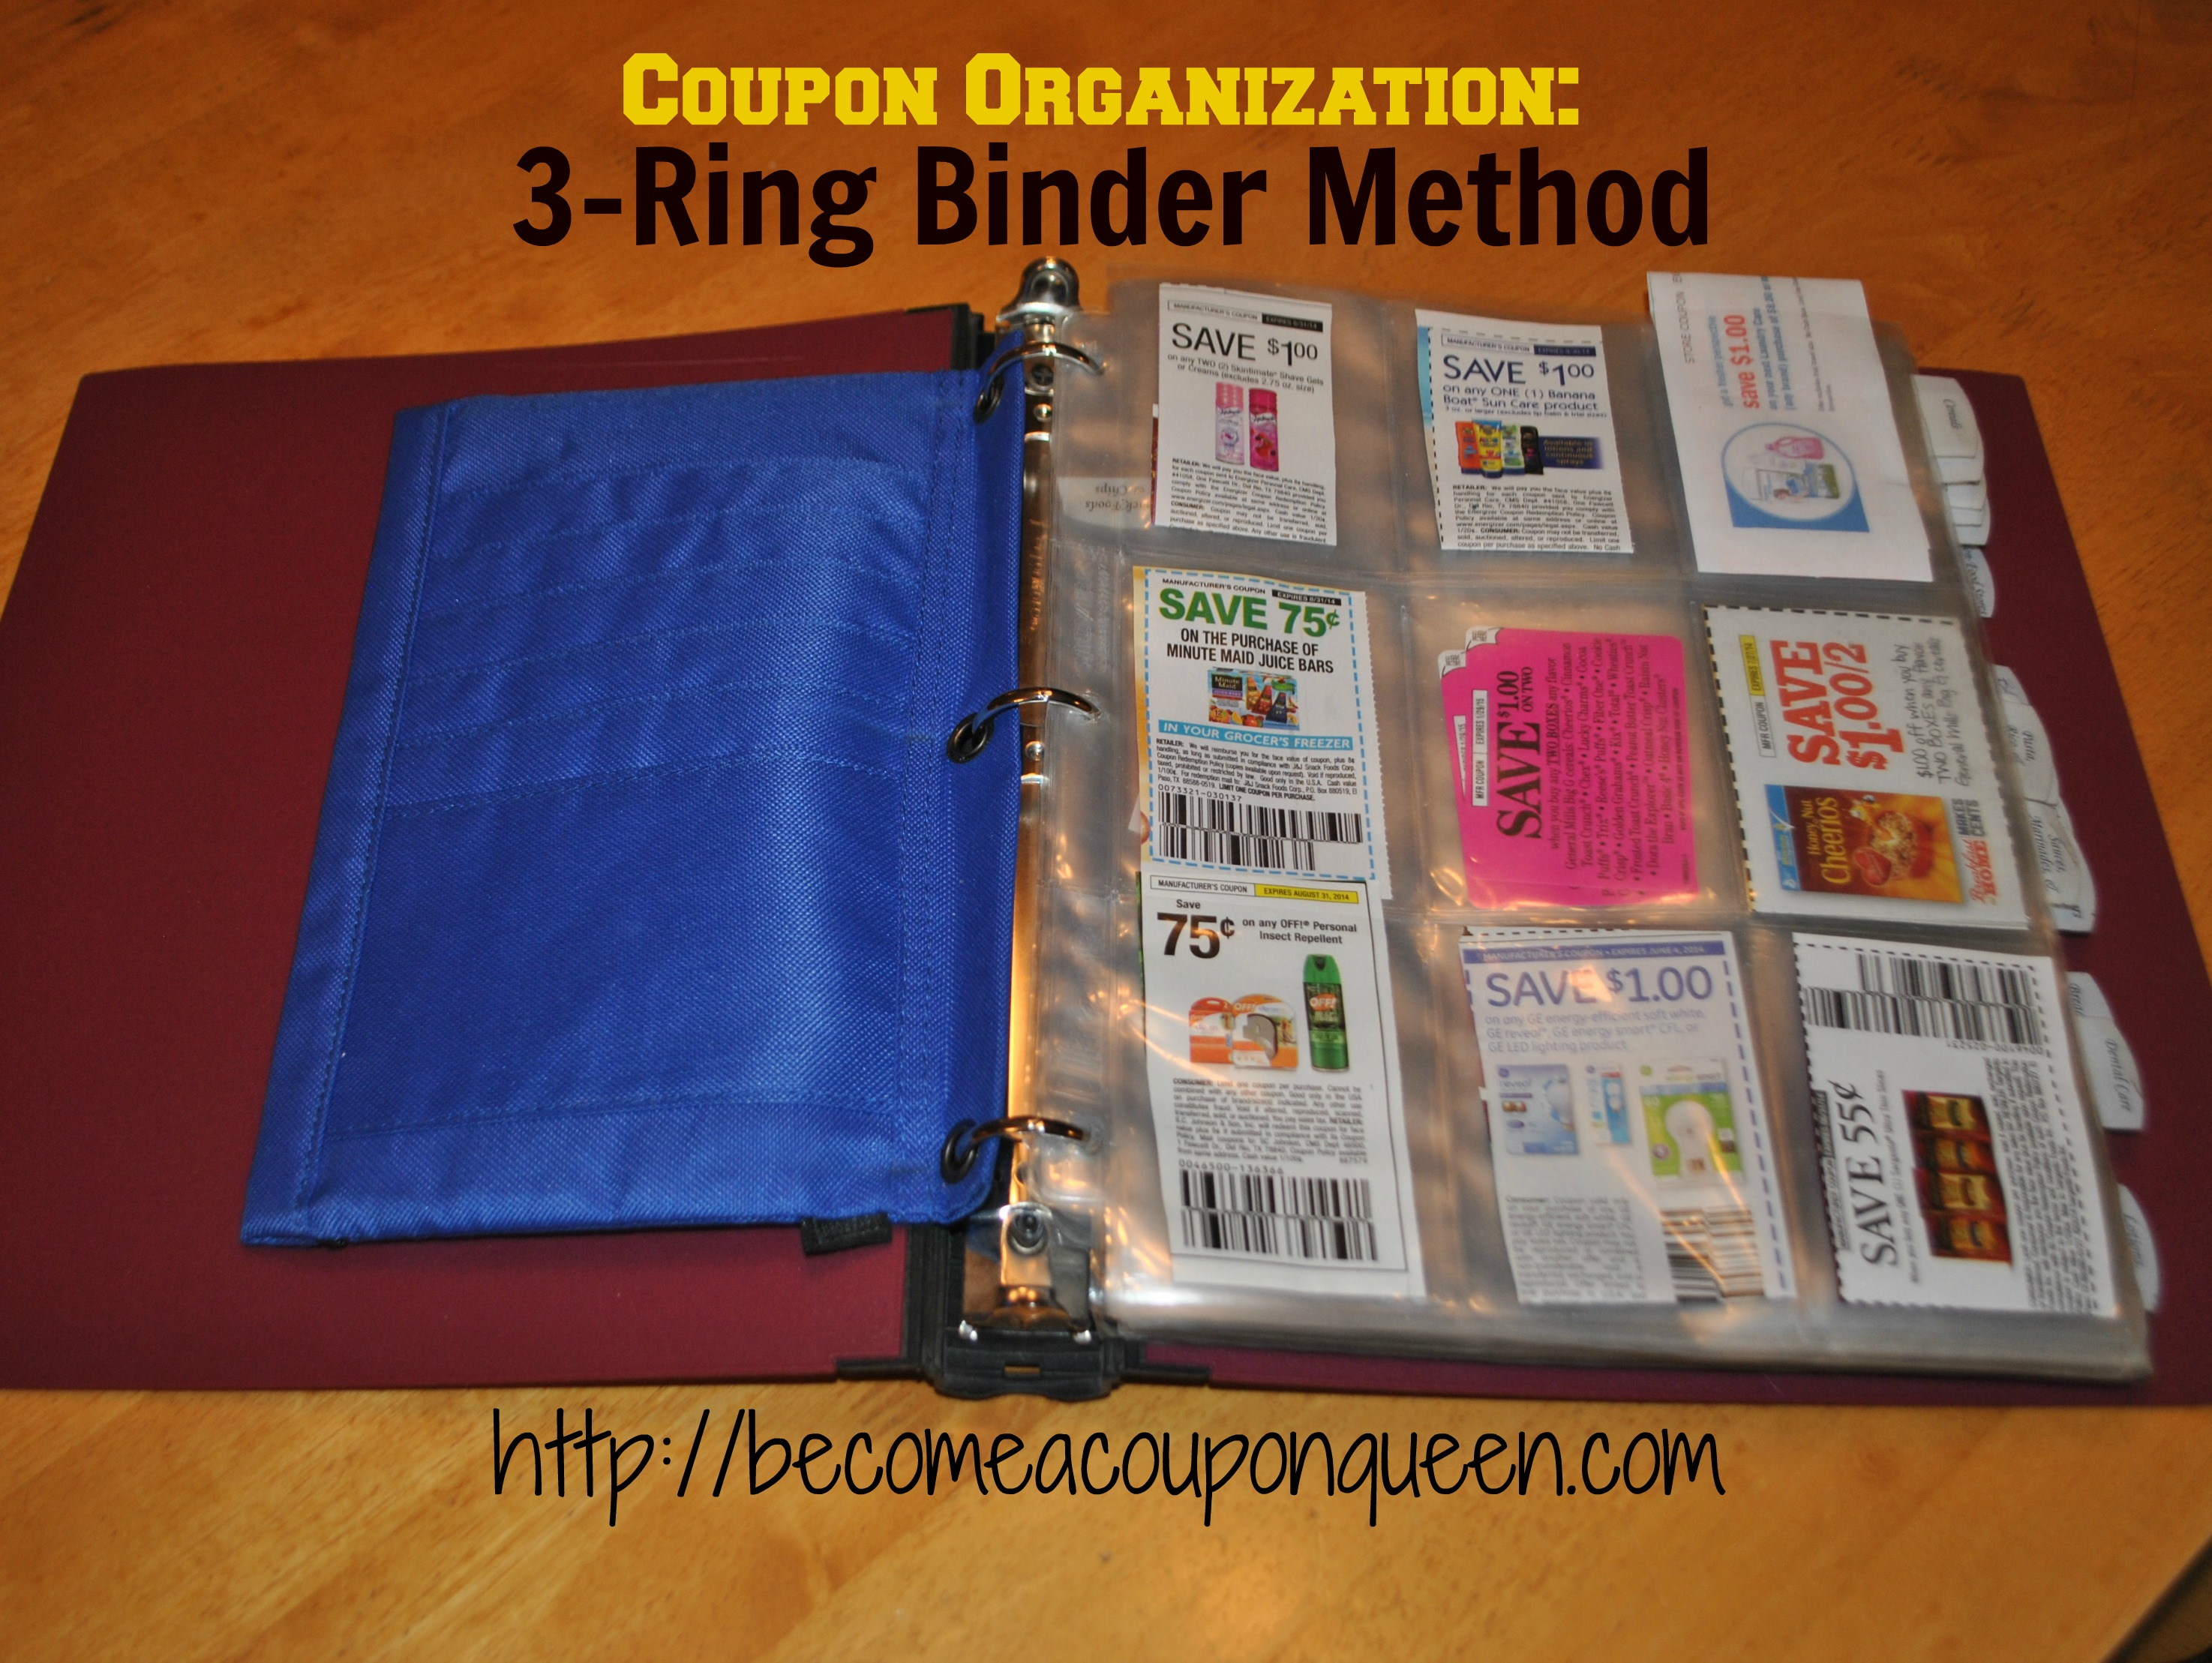 coupon organization 3-ring binder